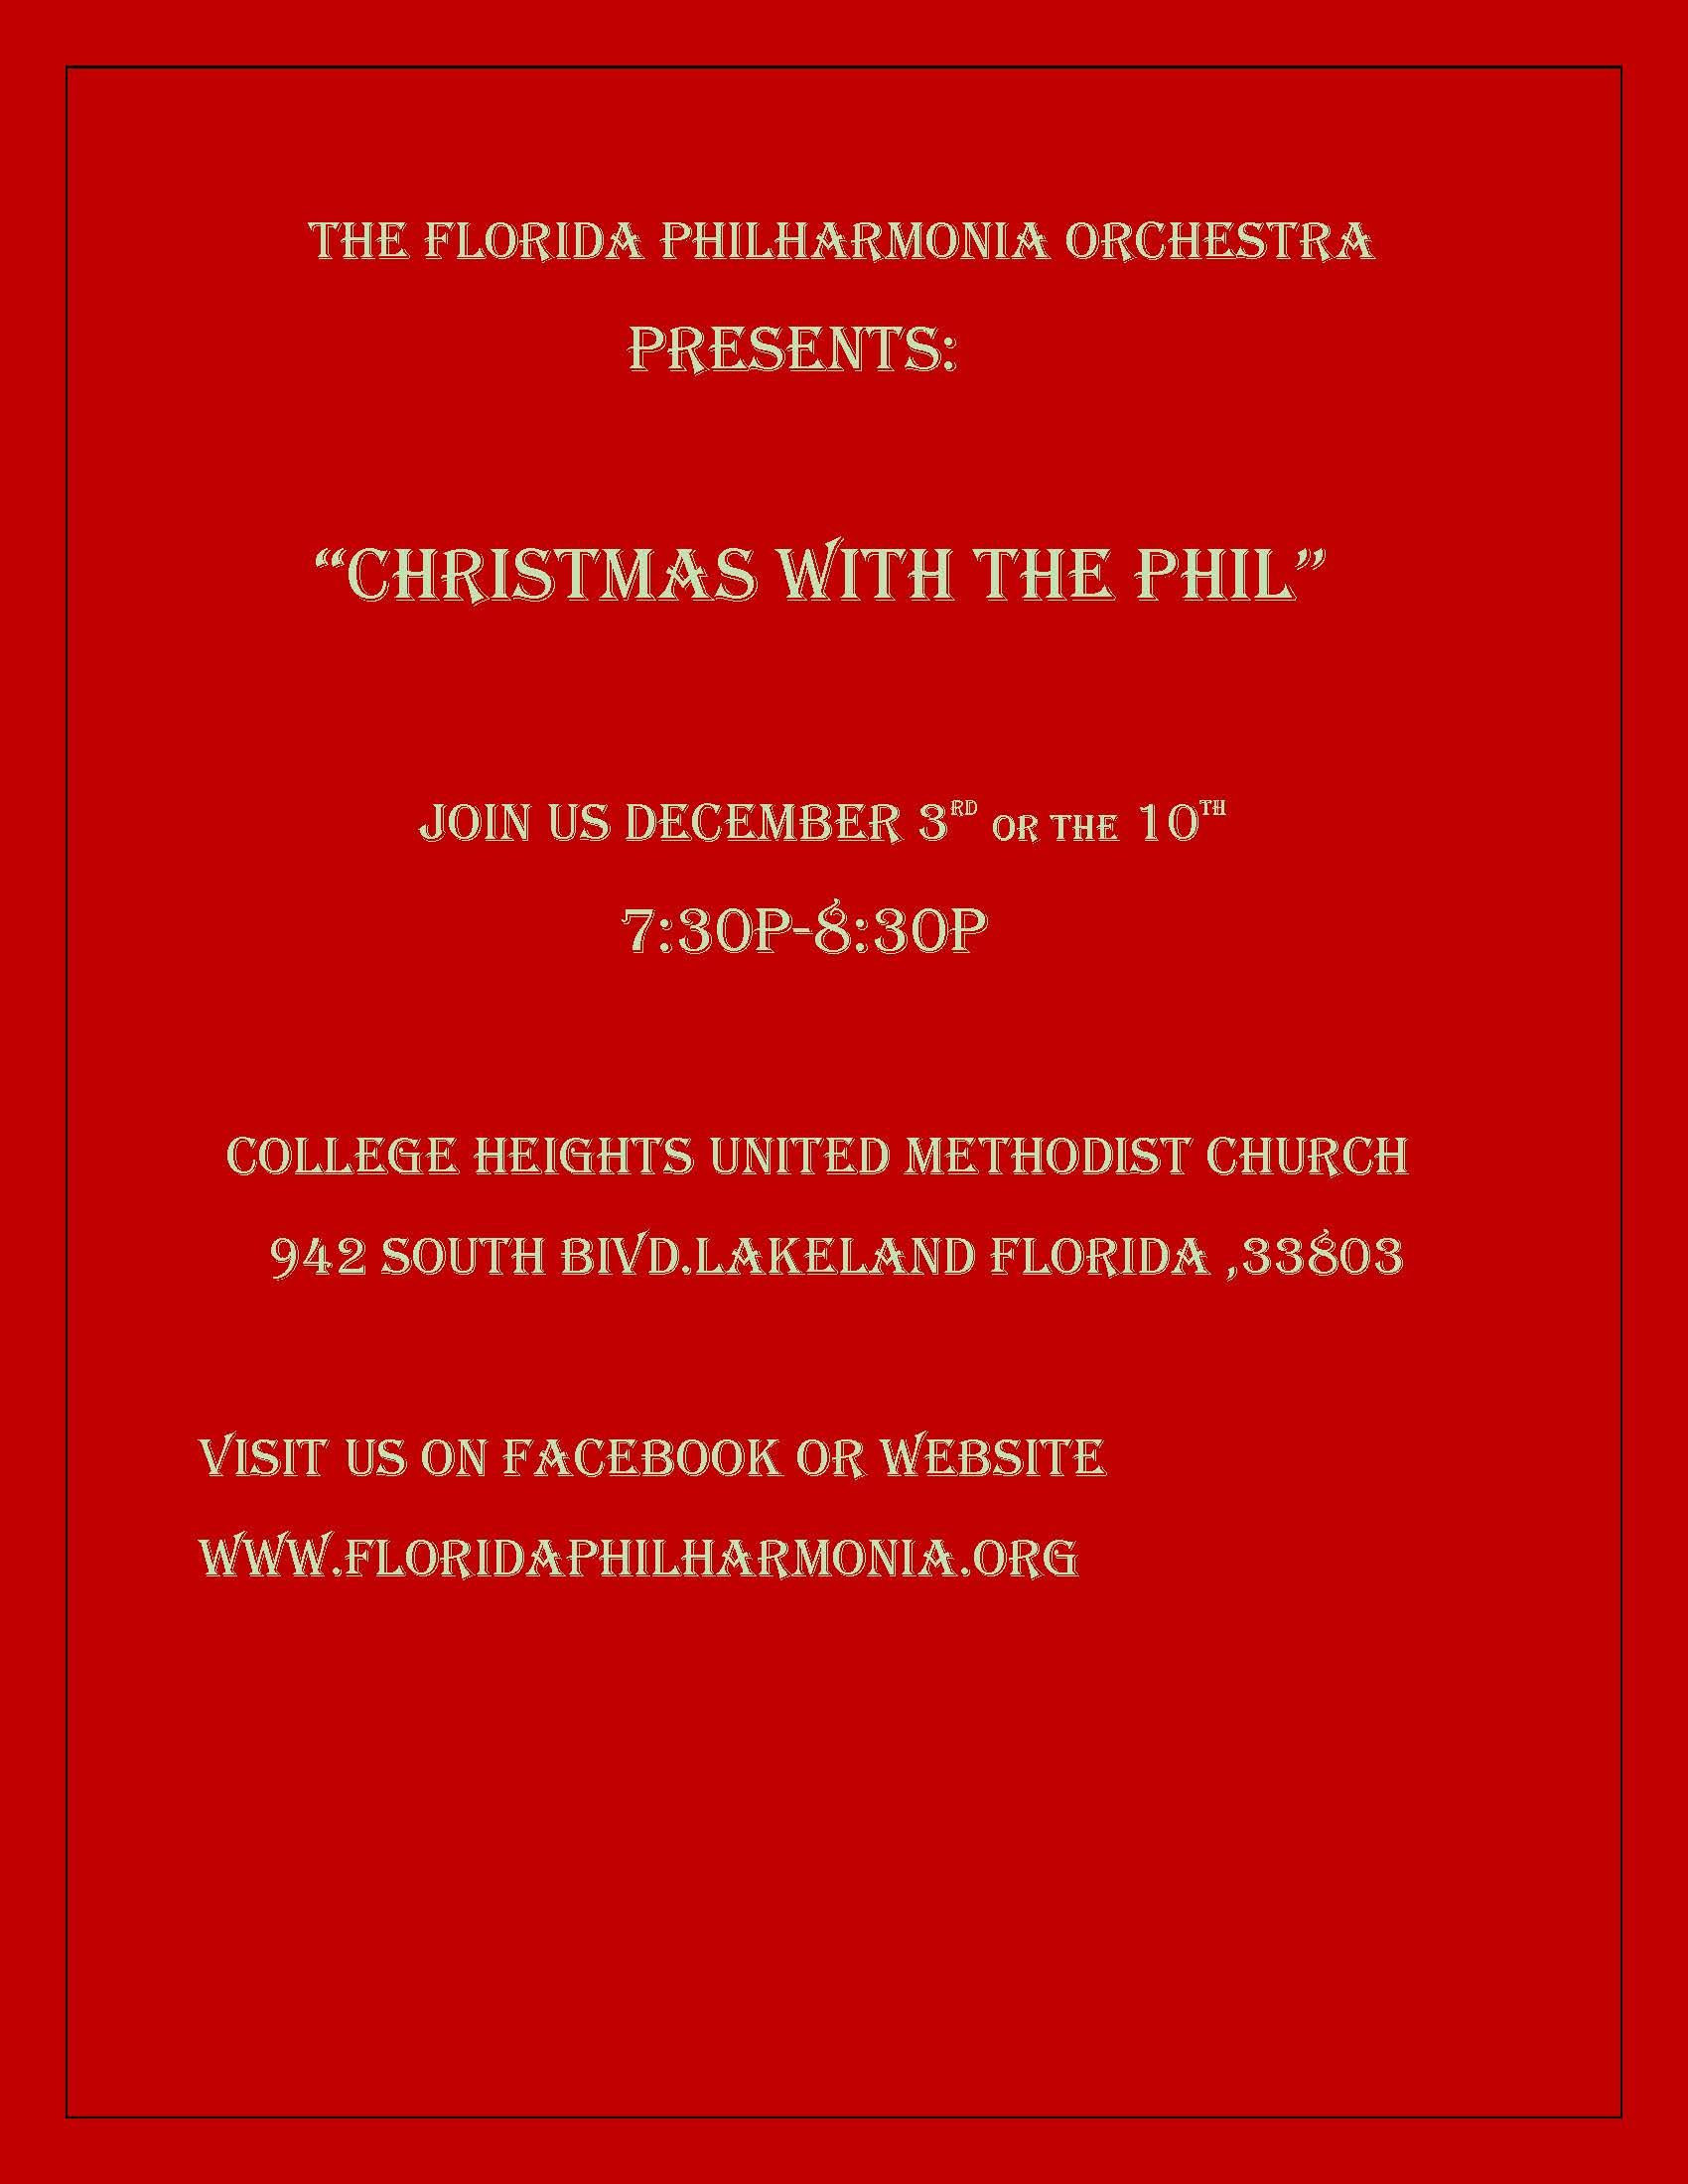 "florida philharmonia orchestra presents ""christmas with teh phil"" 12-3 and 12-10-19, 730-830pm, college heights united methodist church 942 South Blvd, lakeland, www.floridaphilharmonia.org"